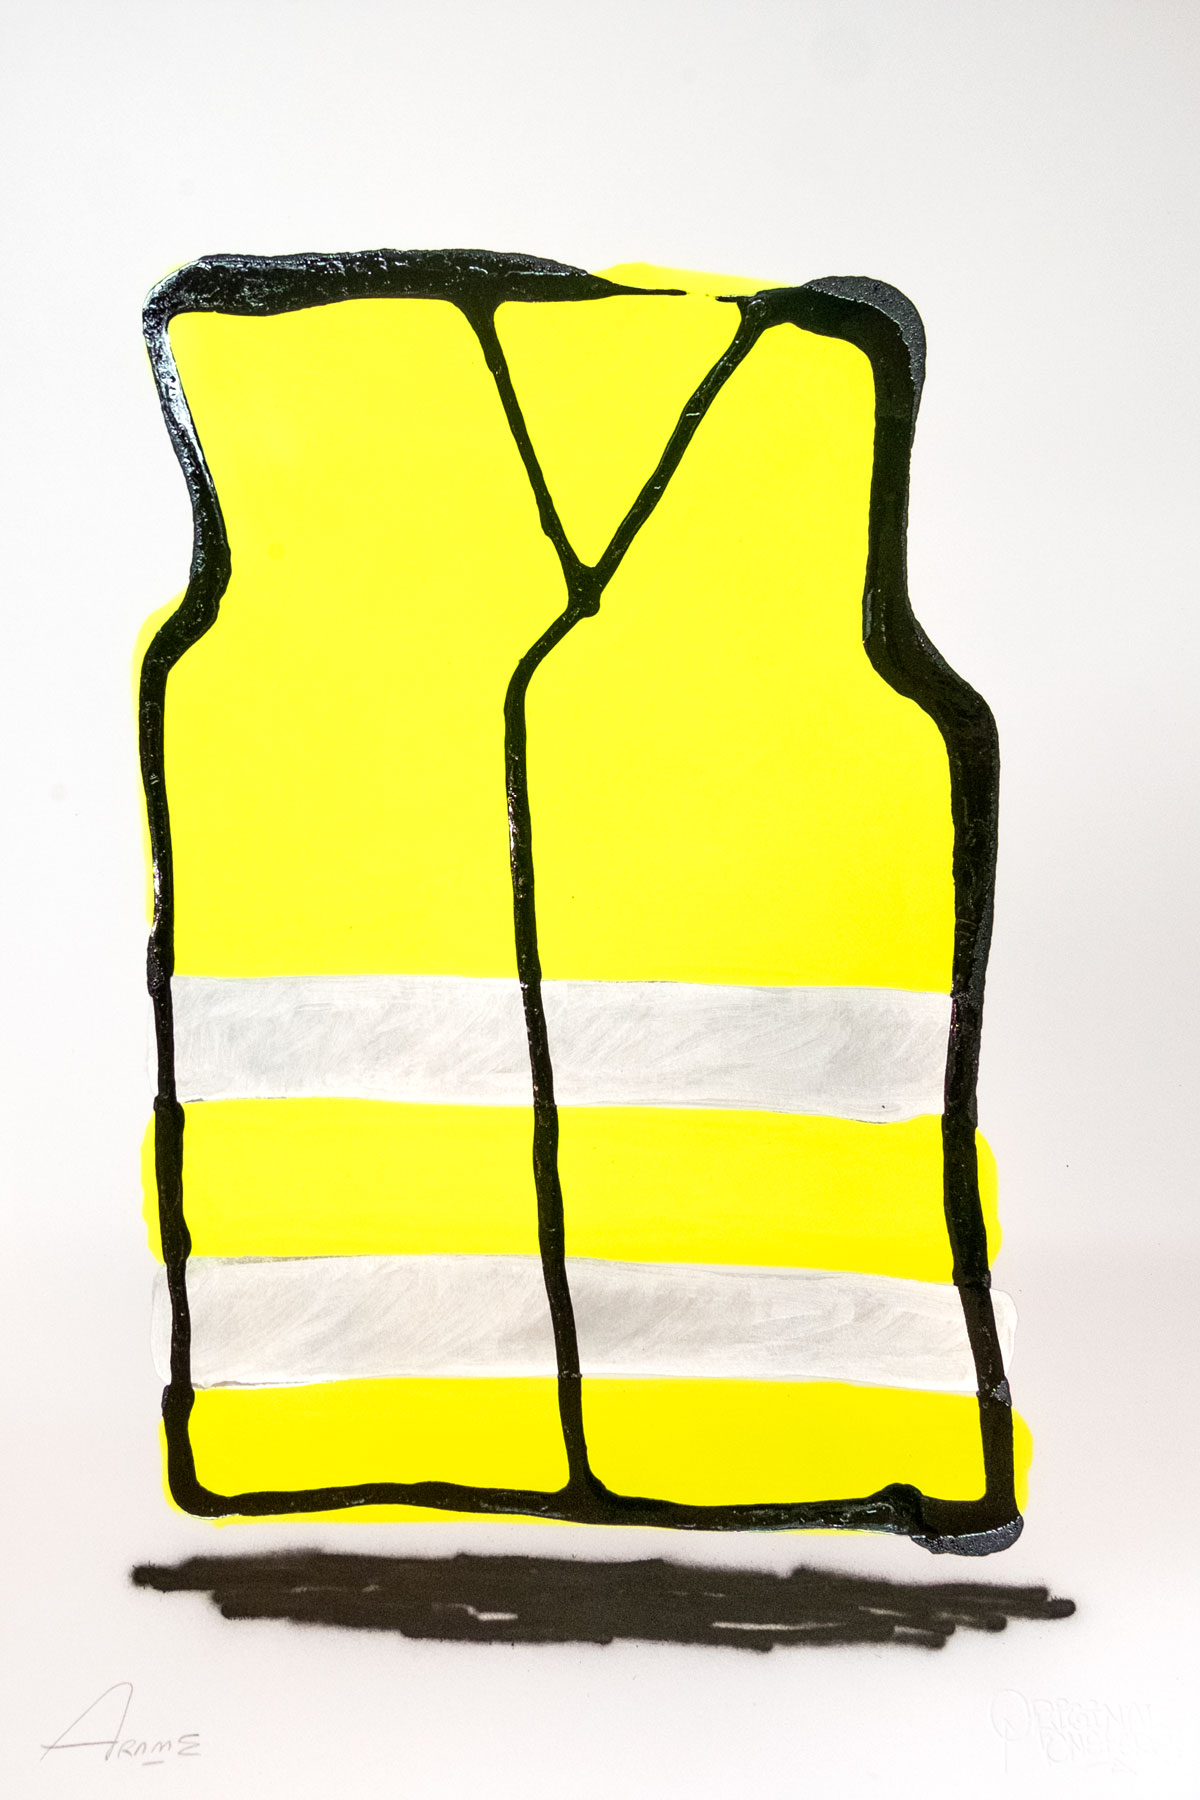 Illustrazione RAILWORKER YELLOW by Arome